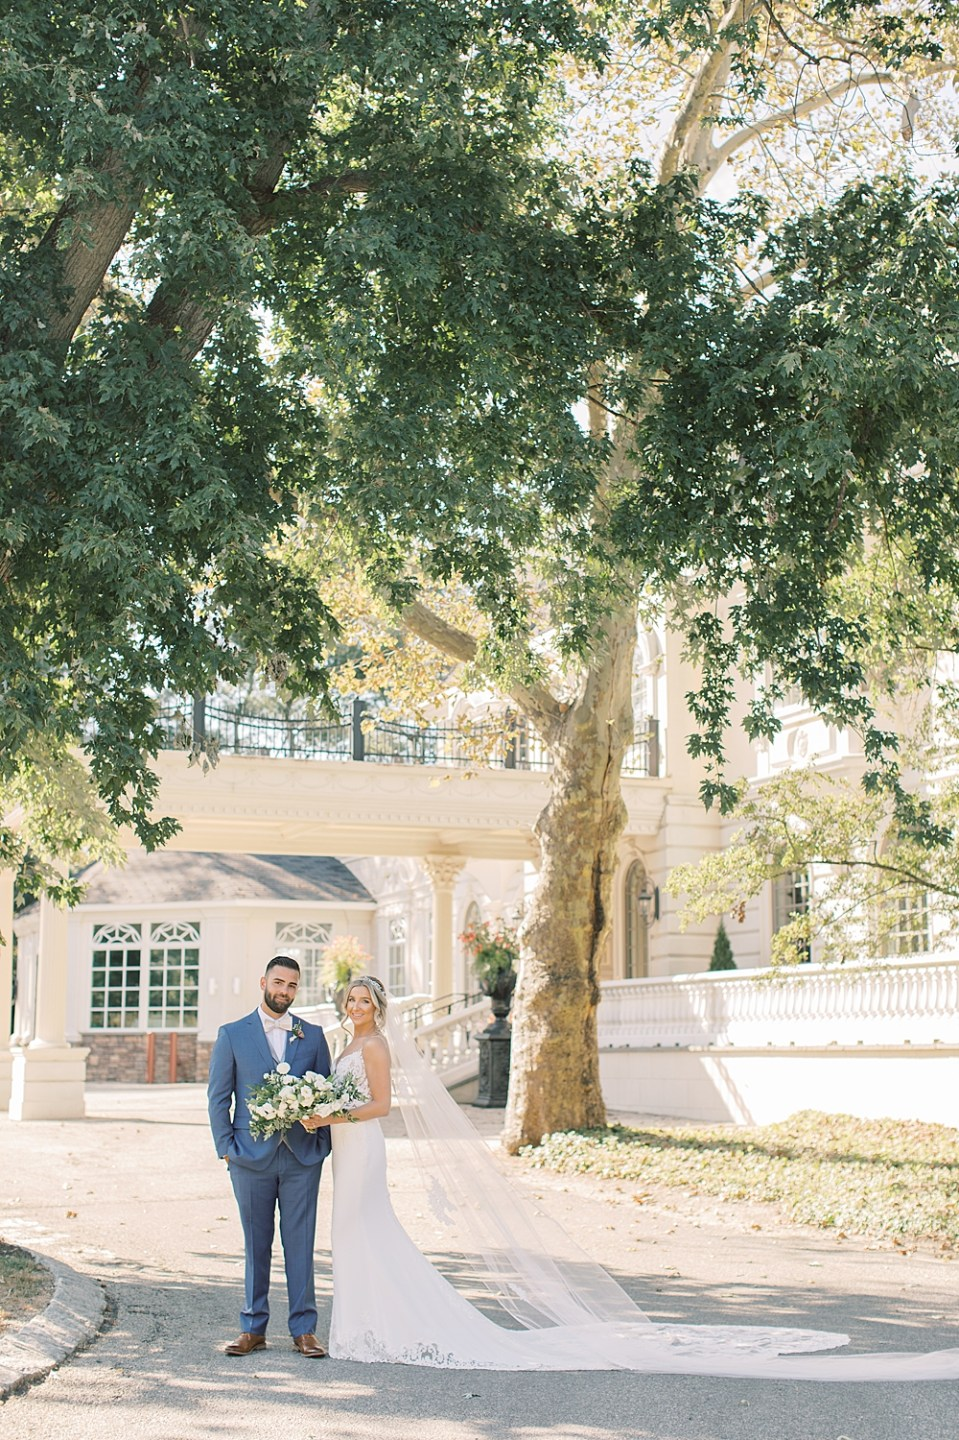 soft and romantic wedding portraits | ashford estate wedding photography | sarah canning photography